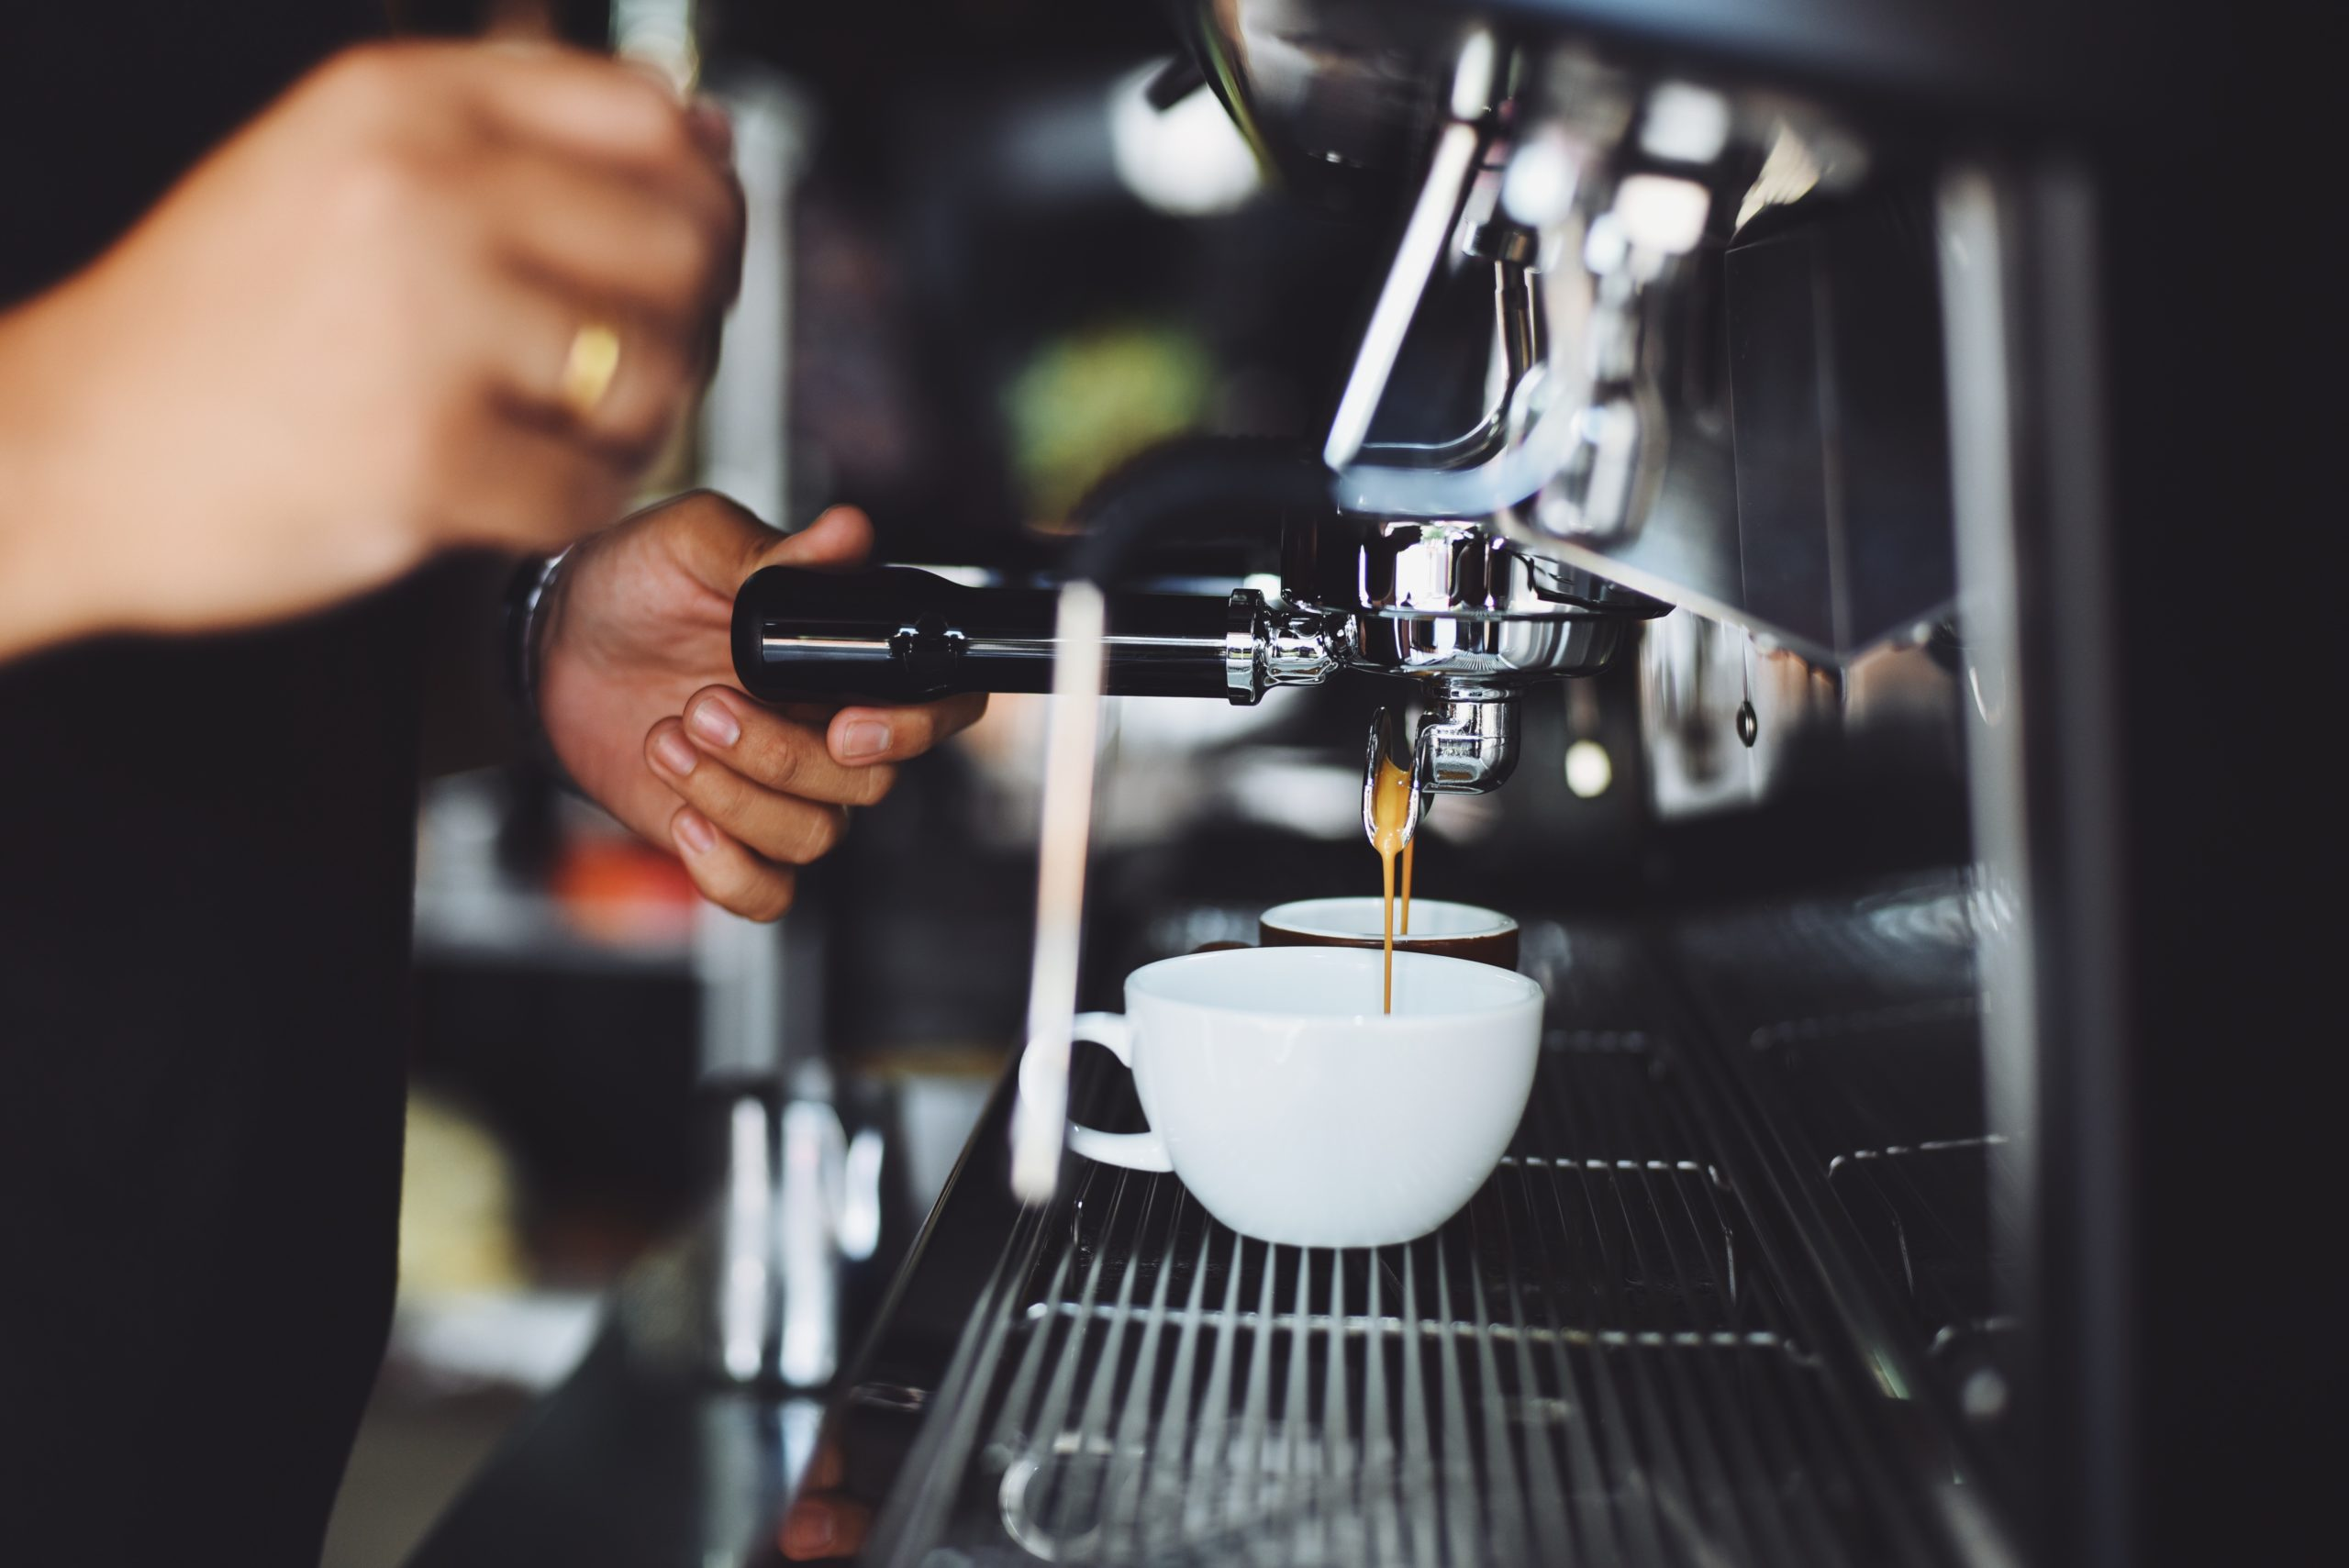 a person extracting coffee from a machine